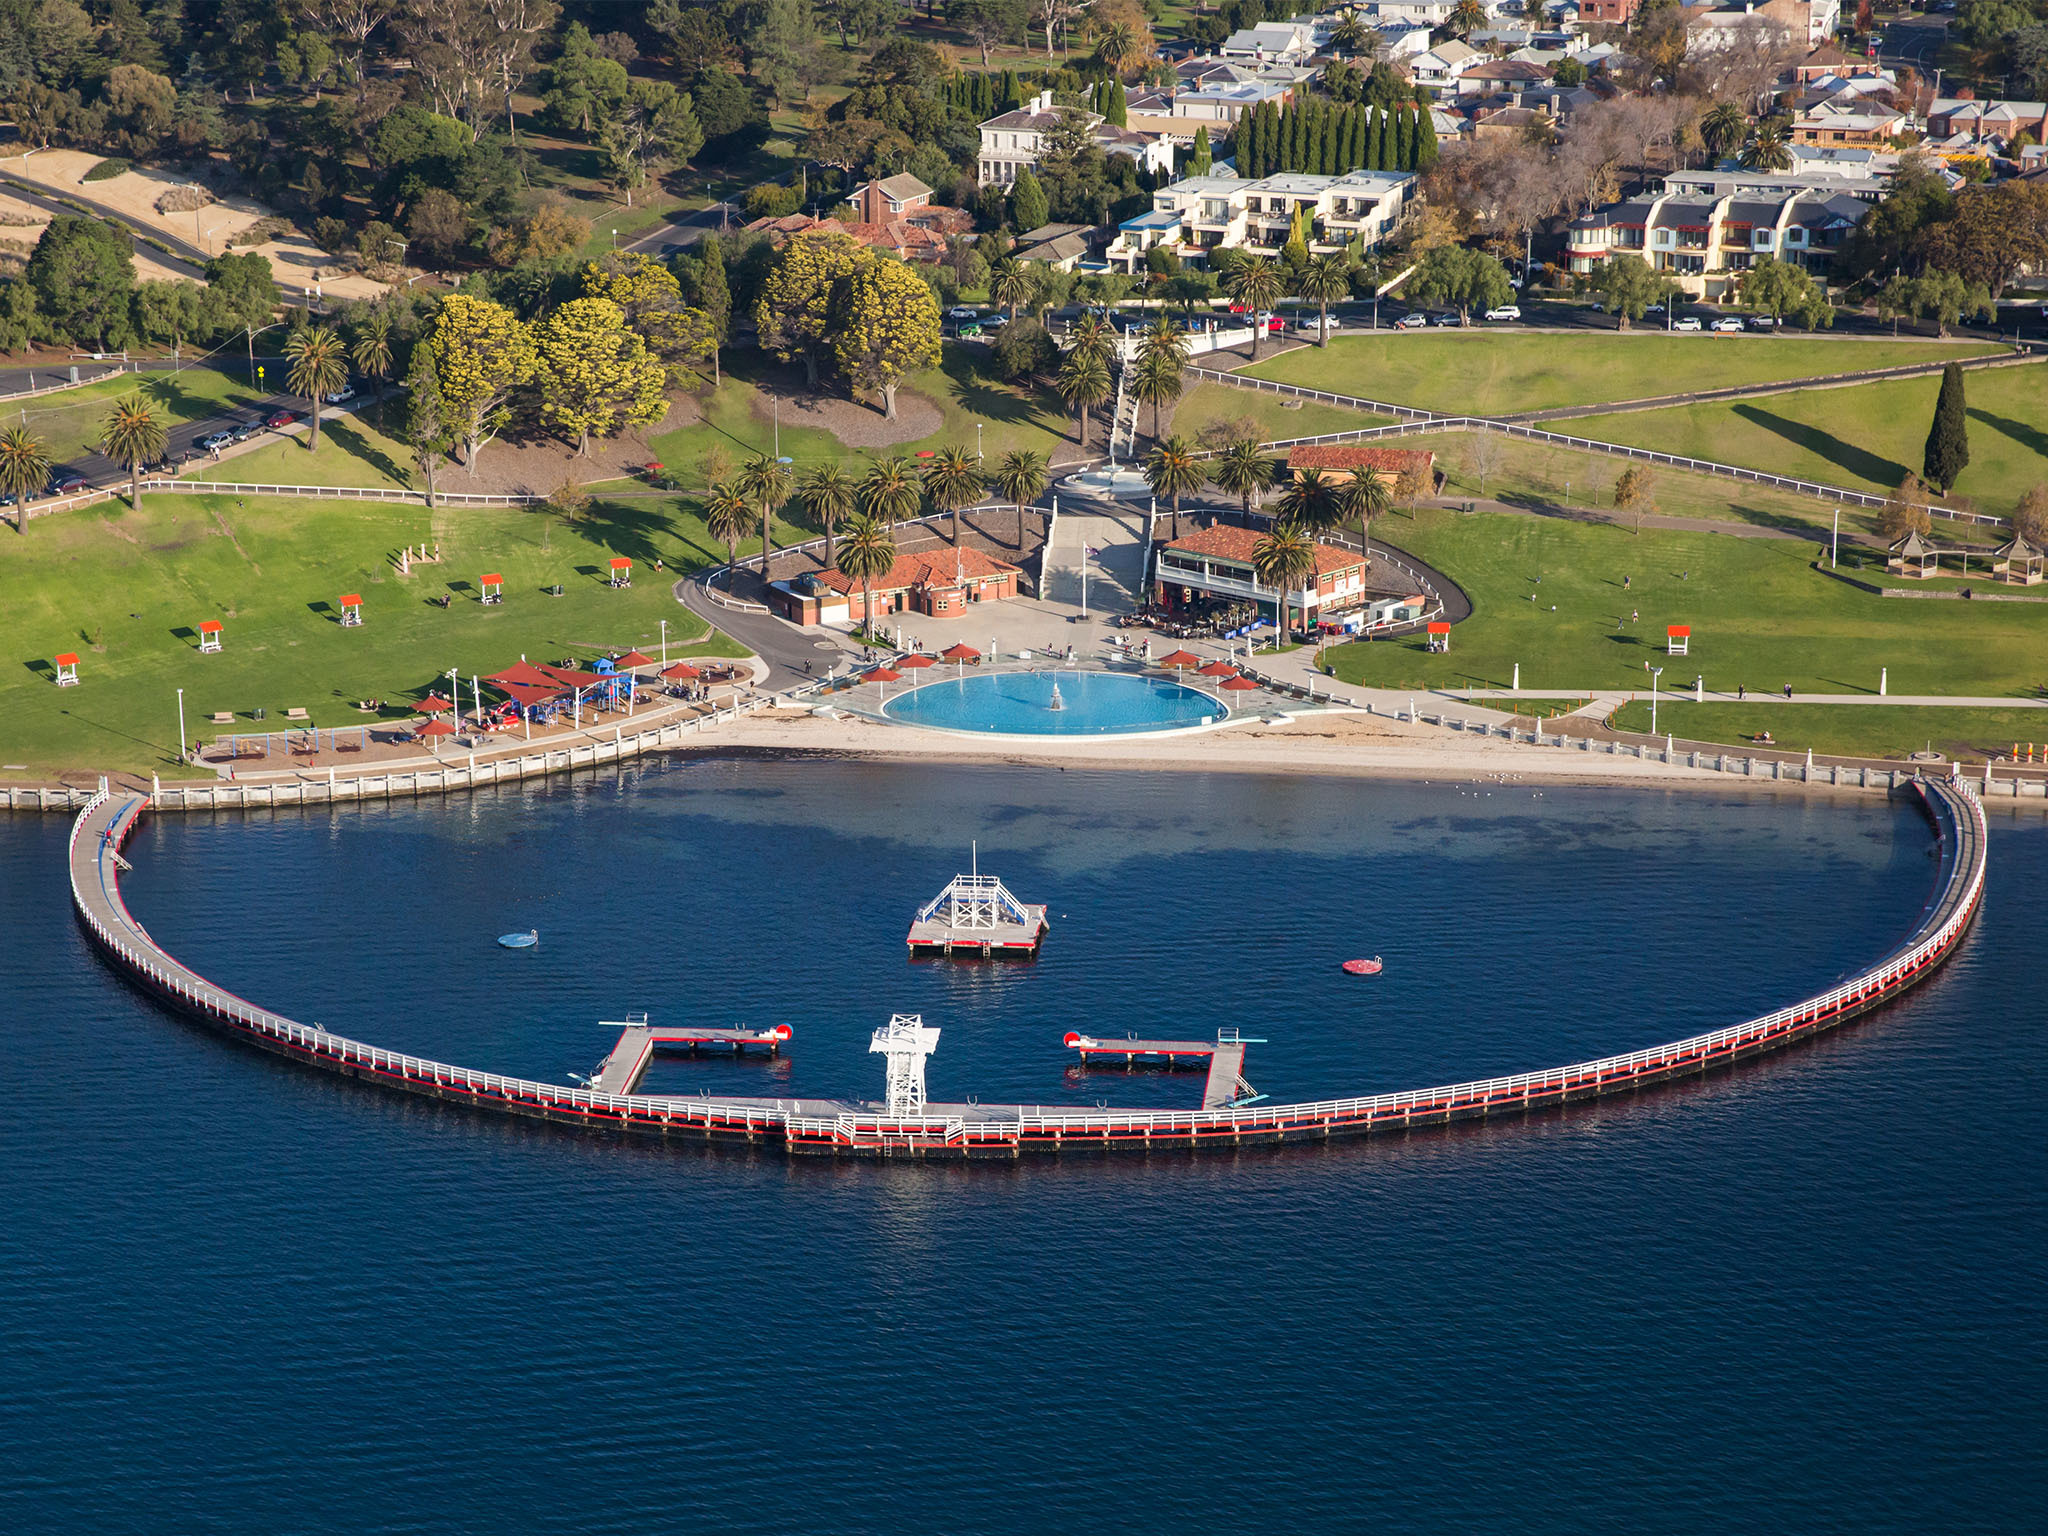 Geelong Pier from above